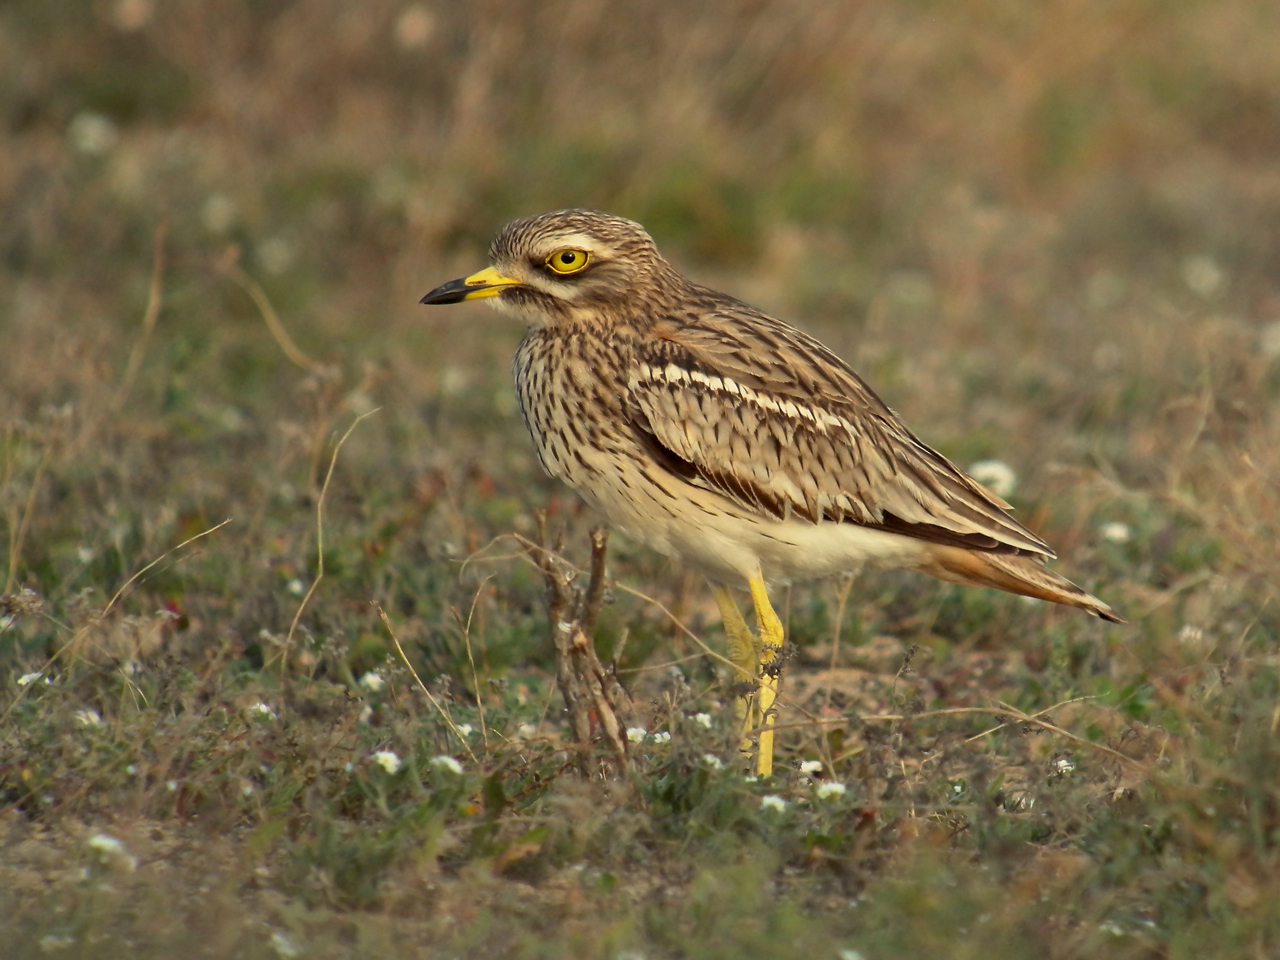 Stone-curlew in Lanzarote. Photo by Frank Vassen